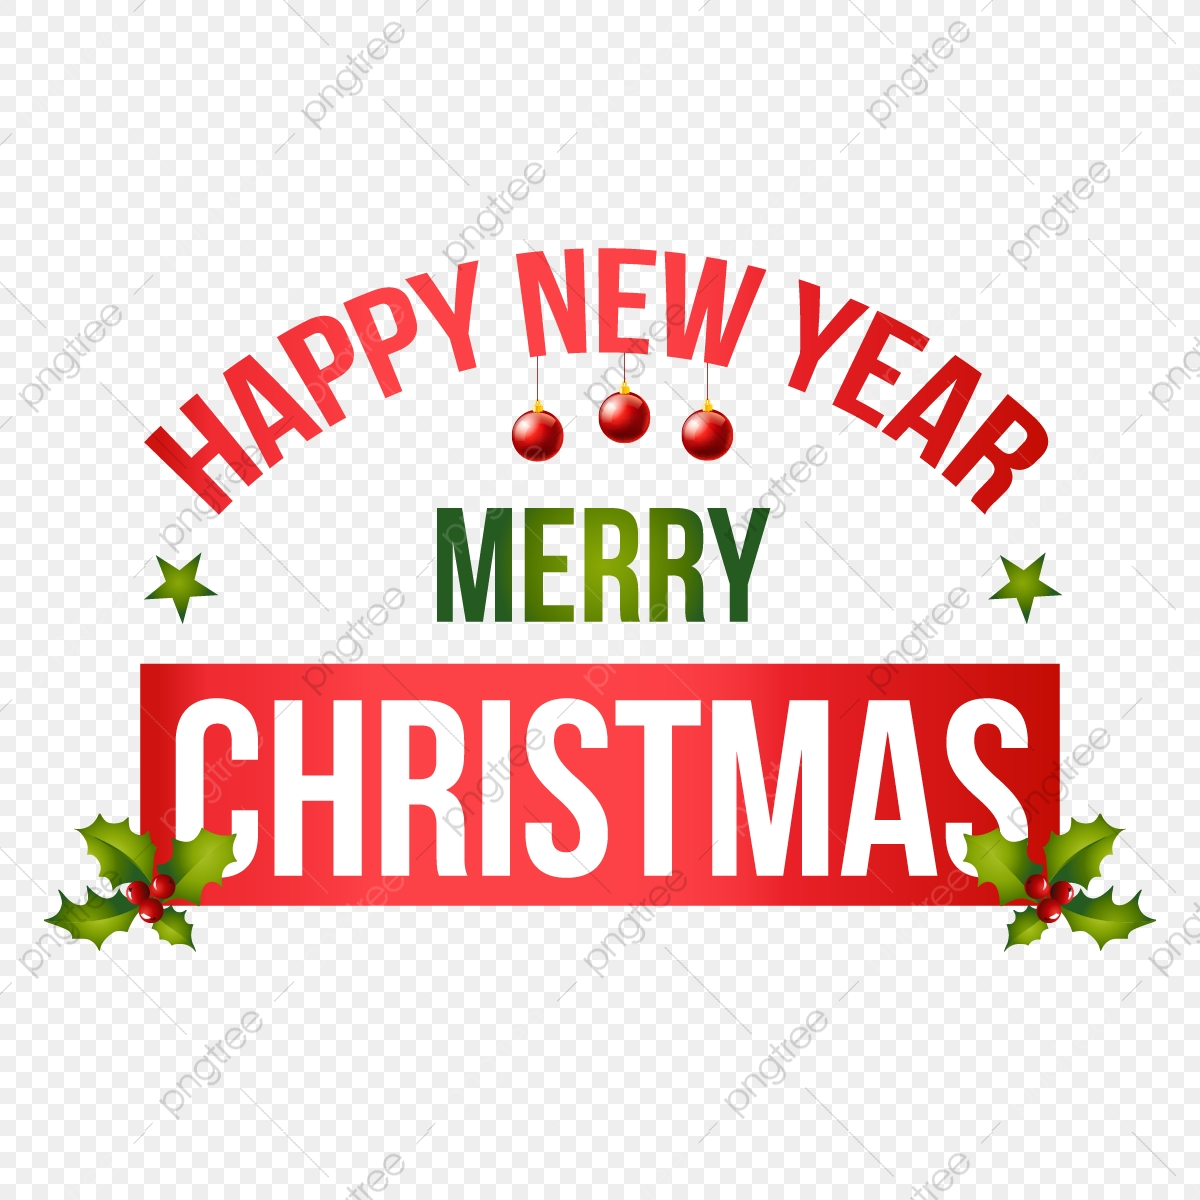 Merry Christmas & Happy New Year Merry Christmas Happy New Year Label Vector, Happy New Year, Merry